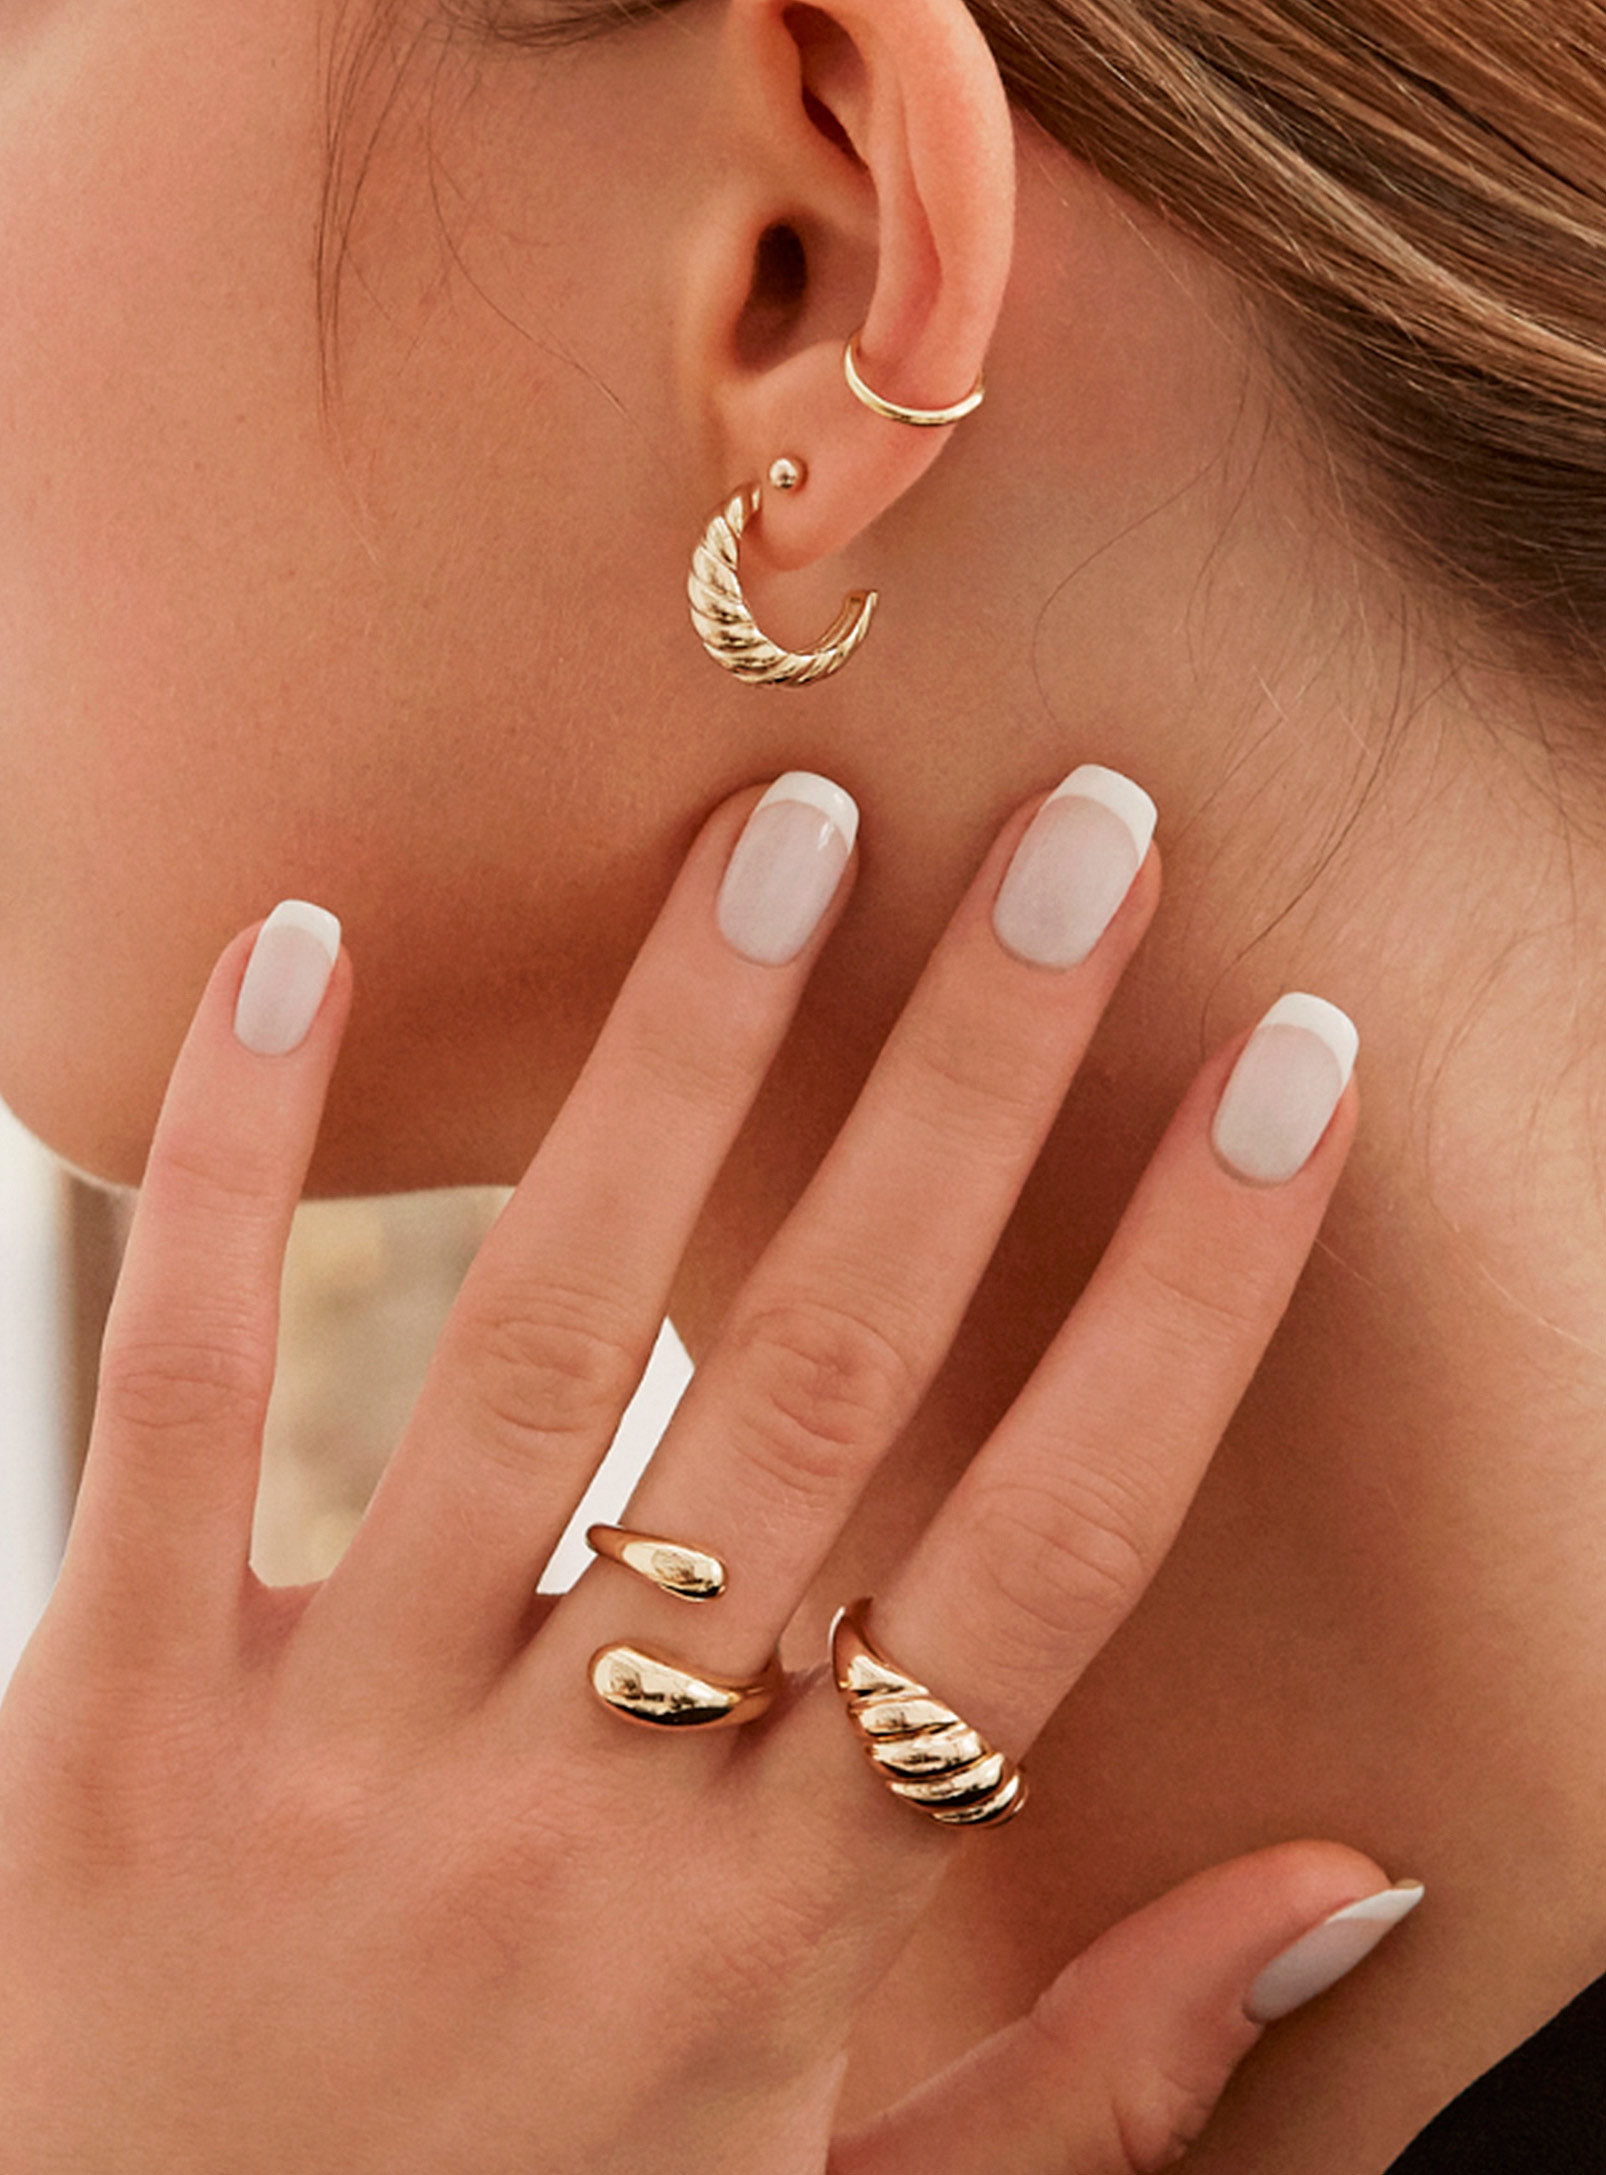 A person wearing two rings on their fingers